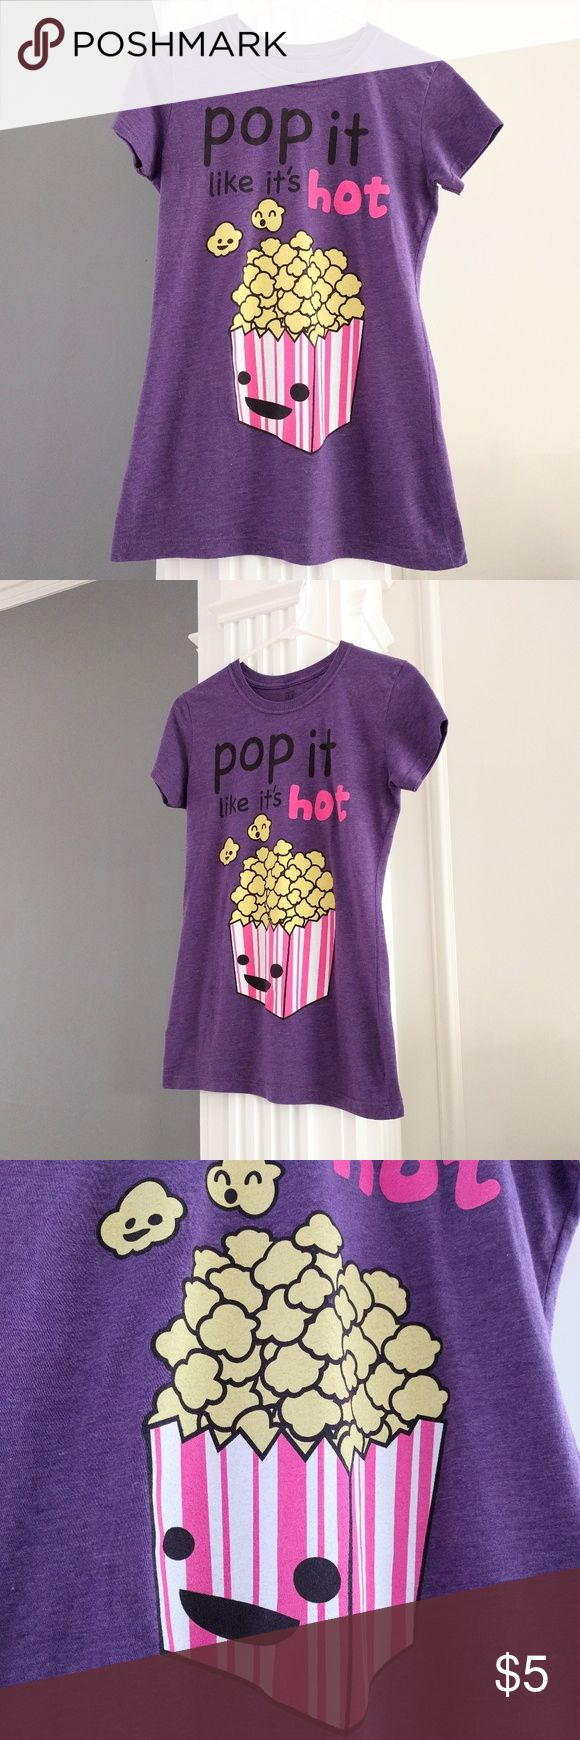 Adorable popcorn t-shirt Literally worn once, but I kept it just because it's so darn cute!  Excellent condition!  Juniors XL.  Bust about 34, length about 26.  Has some stretch to it.  Price is firm because it's so low.  Add to a bundle to save 10% today! Tops Tees - Short Sleeve